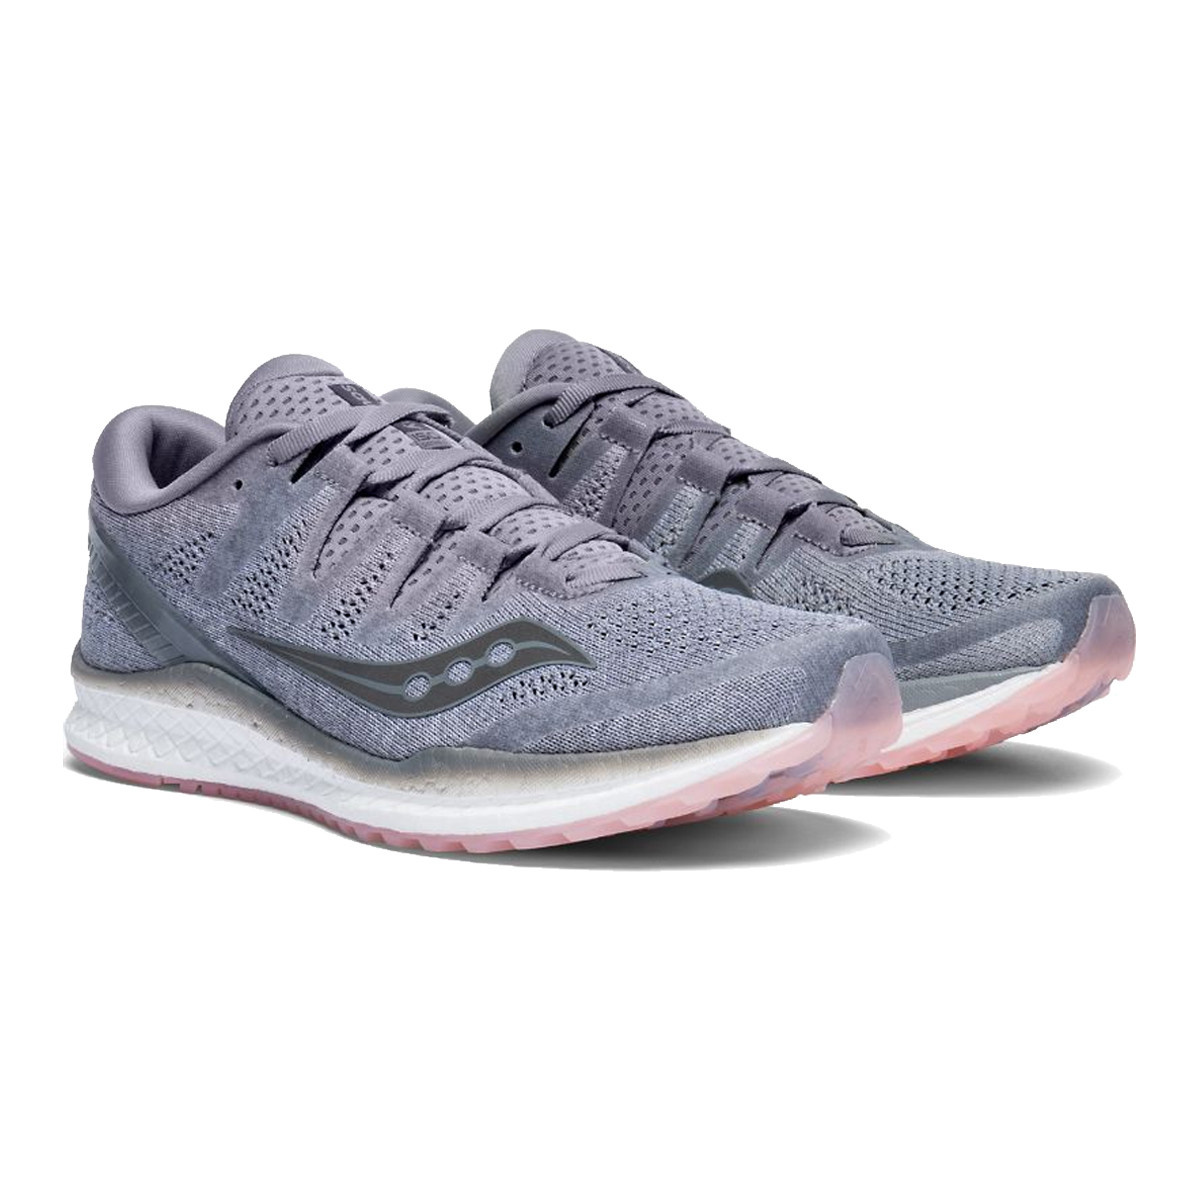 Saucony Saucony Women's Freedom ISO 2 GRY/PCH